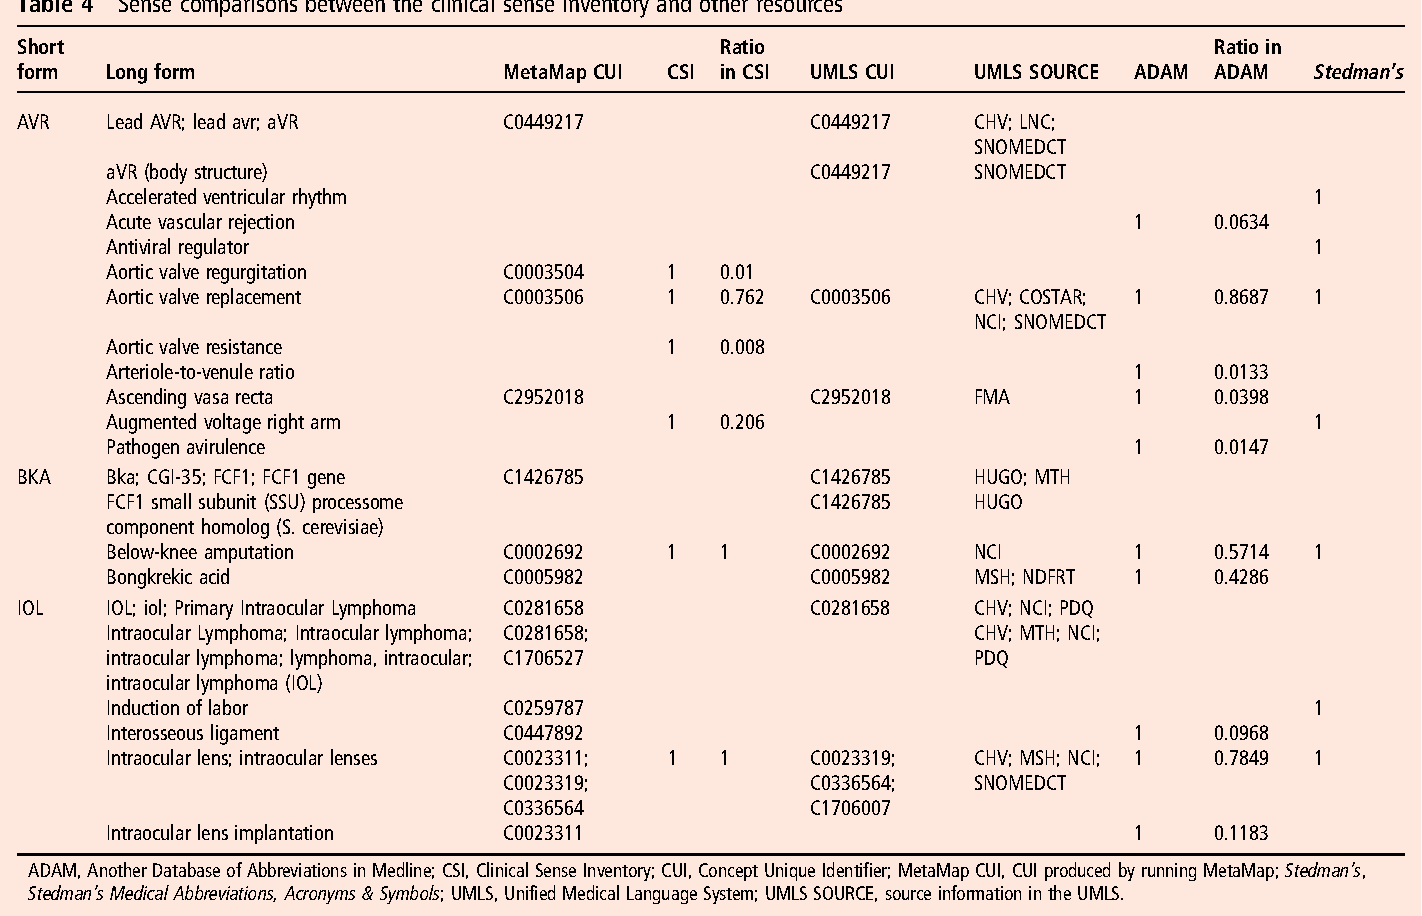 A sense inventory for clinical abbreviations and acronyms created table 4 biocorpaavc Images